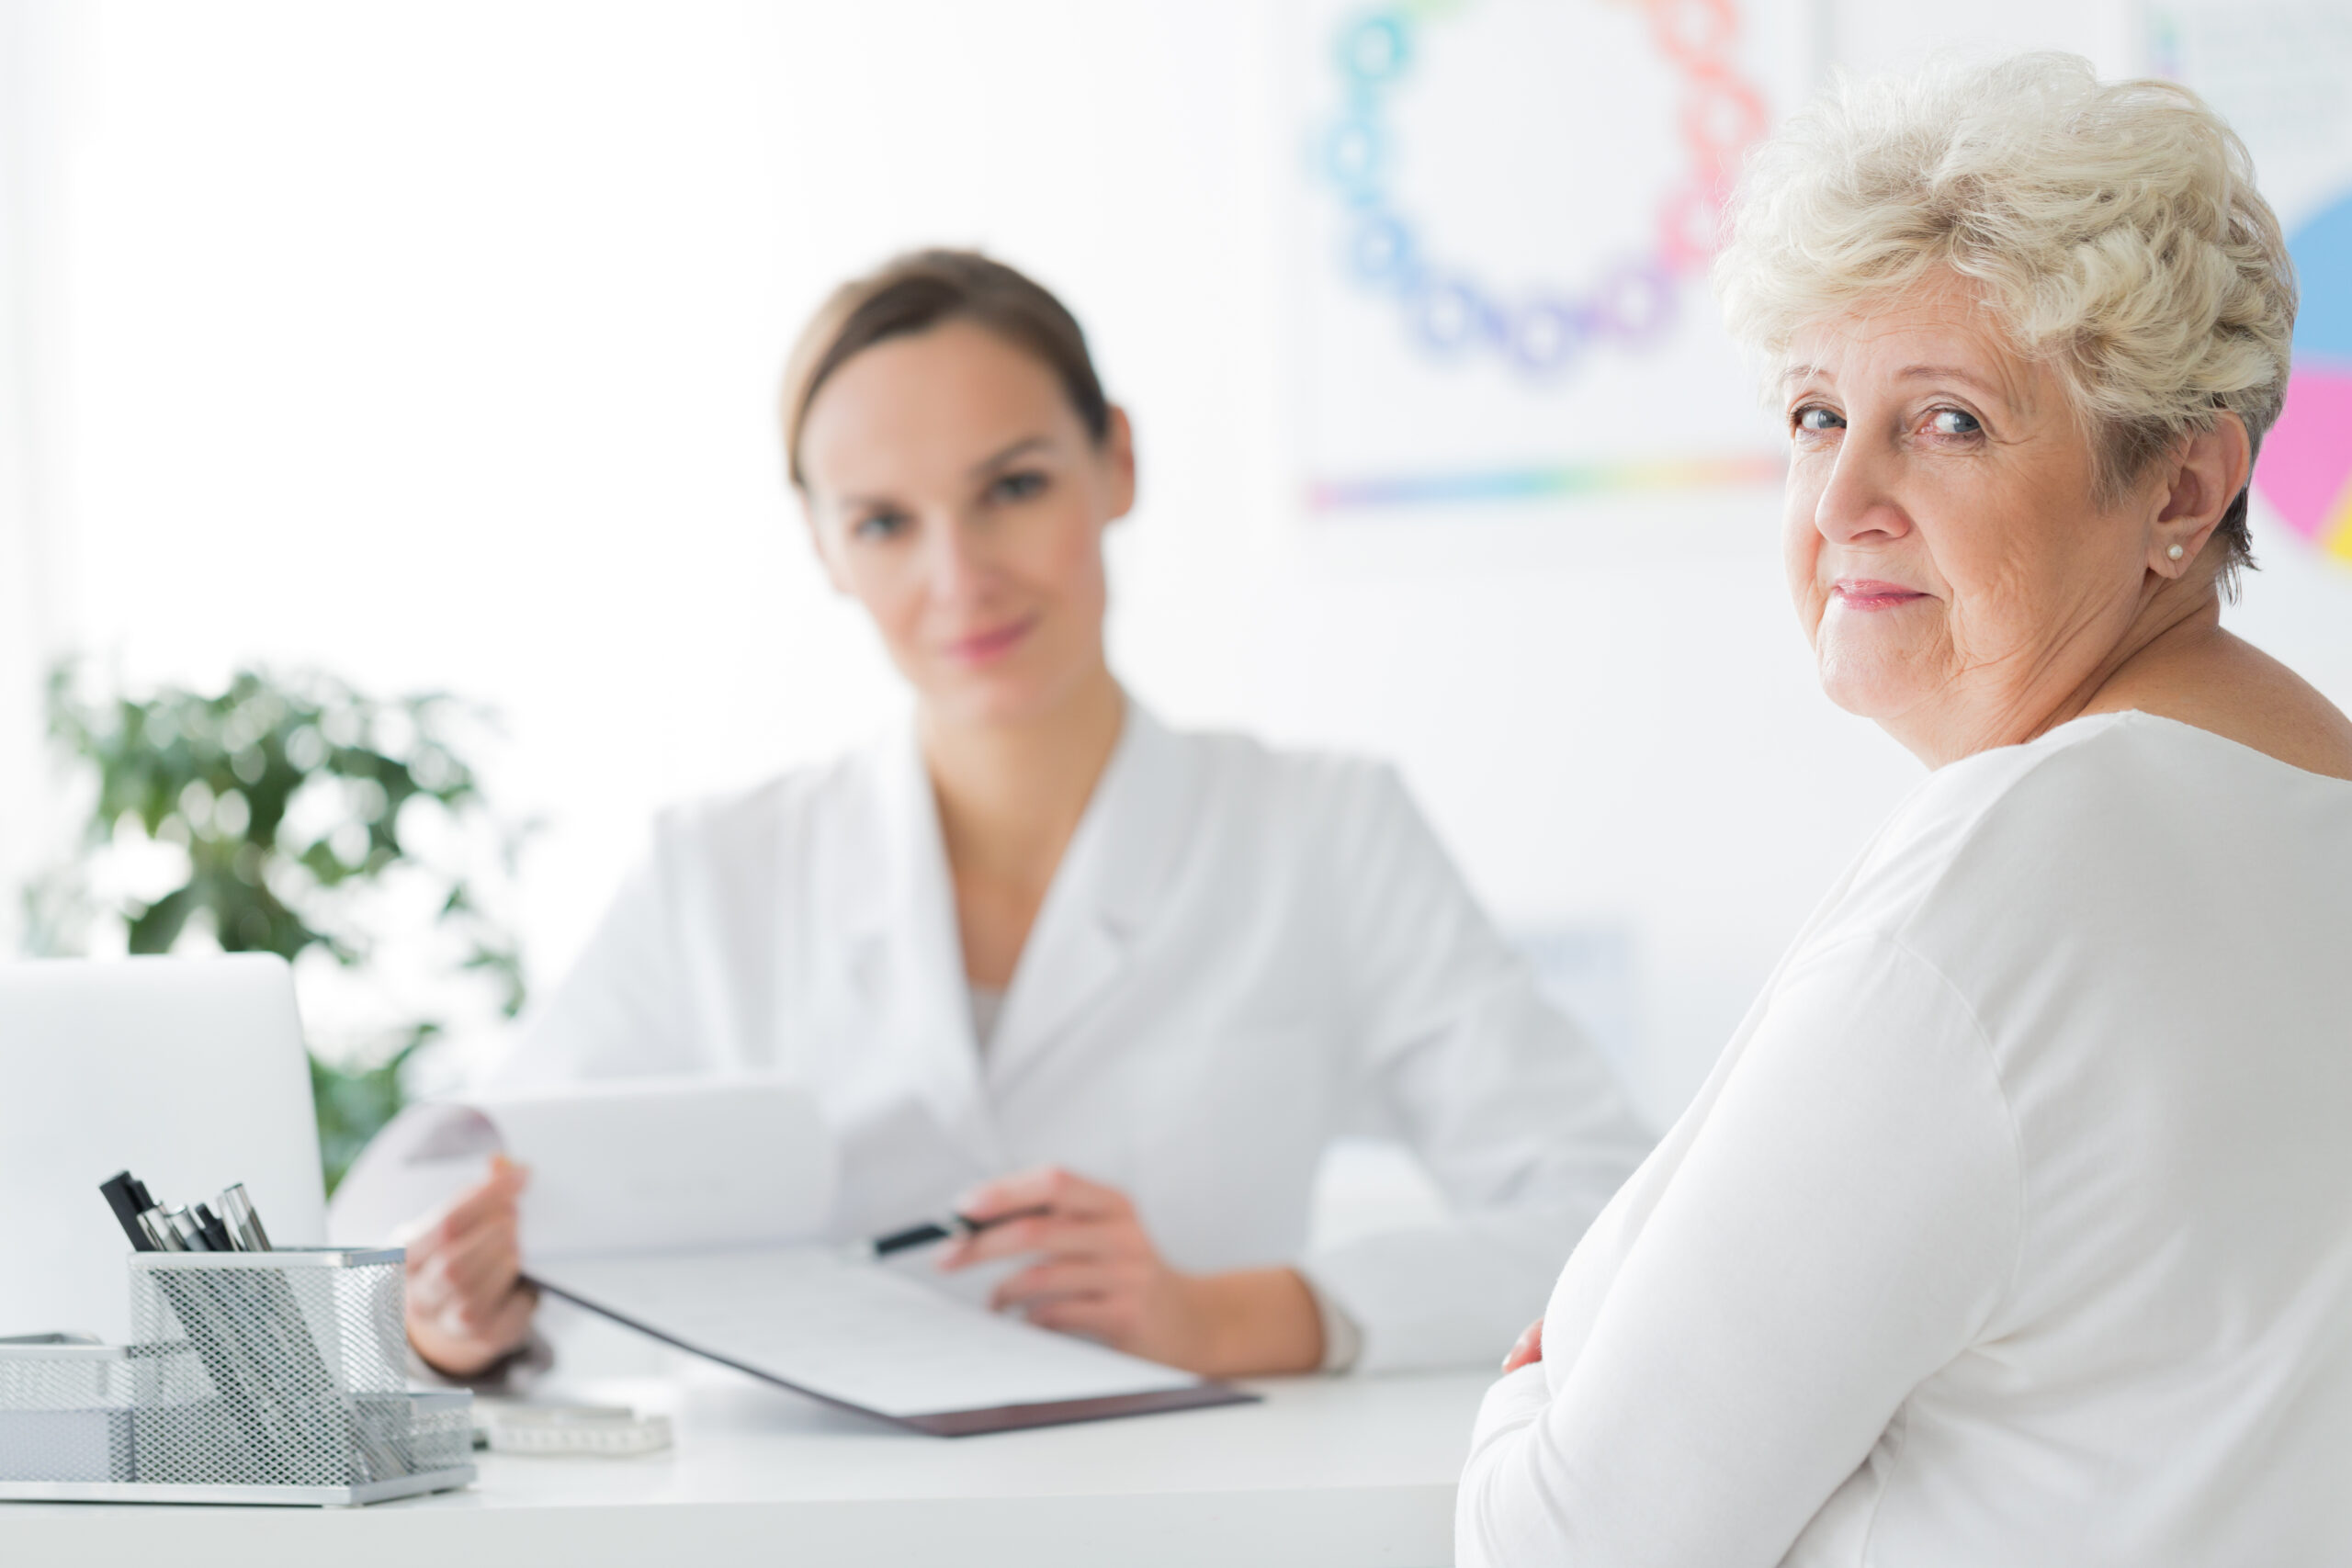 Afbeelding Smiling,,Elder,Dietician's,Patient,Sitting,In,Her,Office,And,Taking